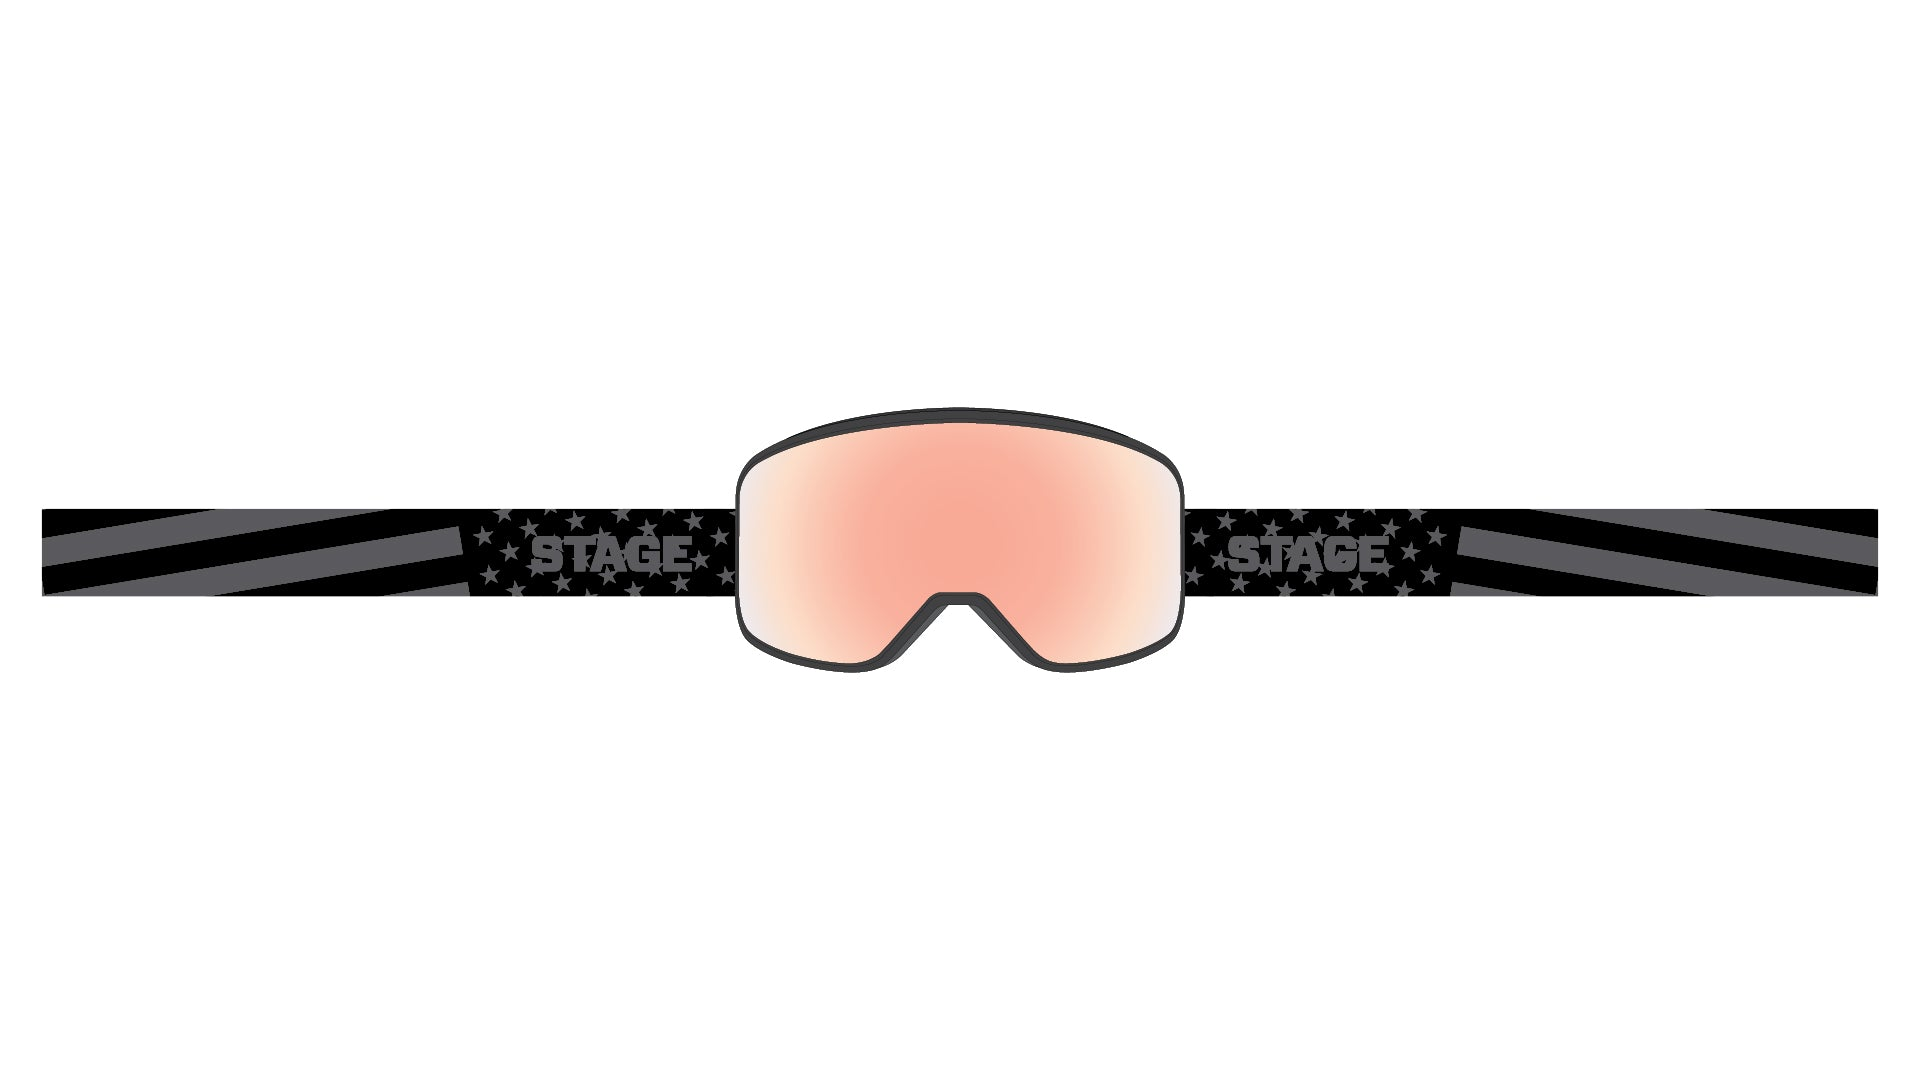 STAGE Prop Goggle - Black Frame / Detector Low Light Lens